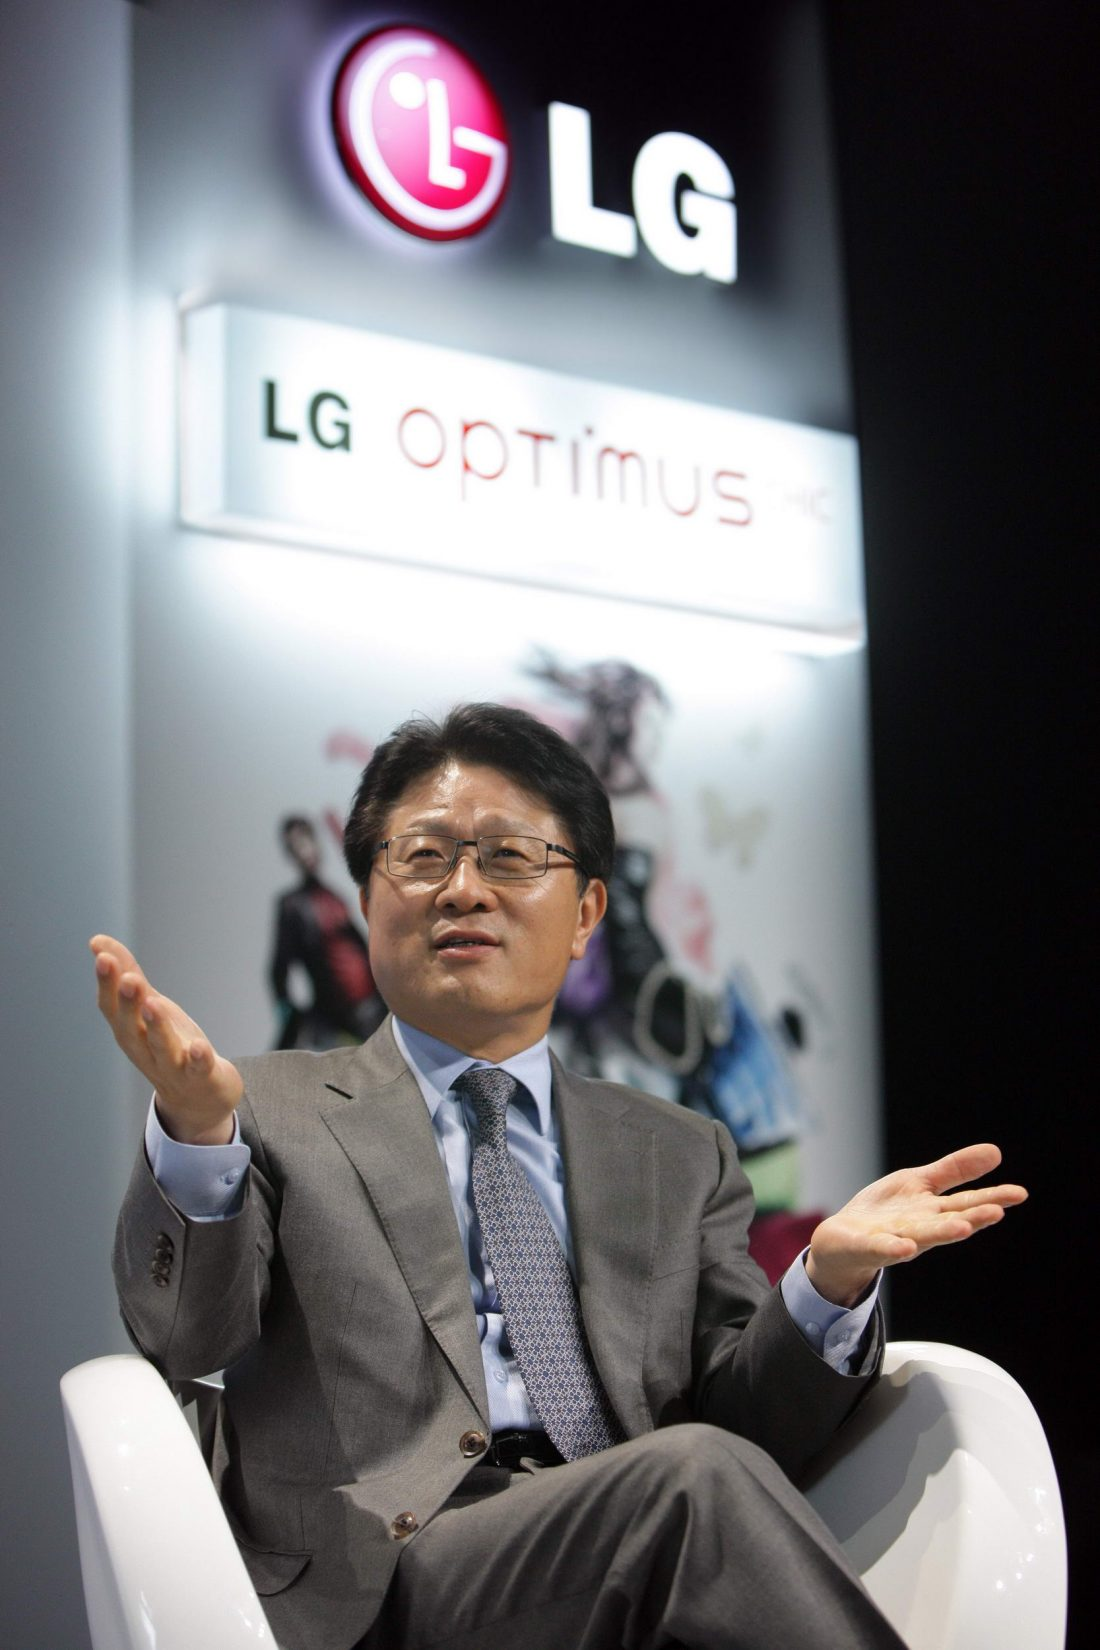 Dr. Skott Ahn sits on the LG Optimus stage while discussing LG's new phones and strategies in operating the business.